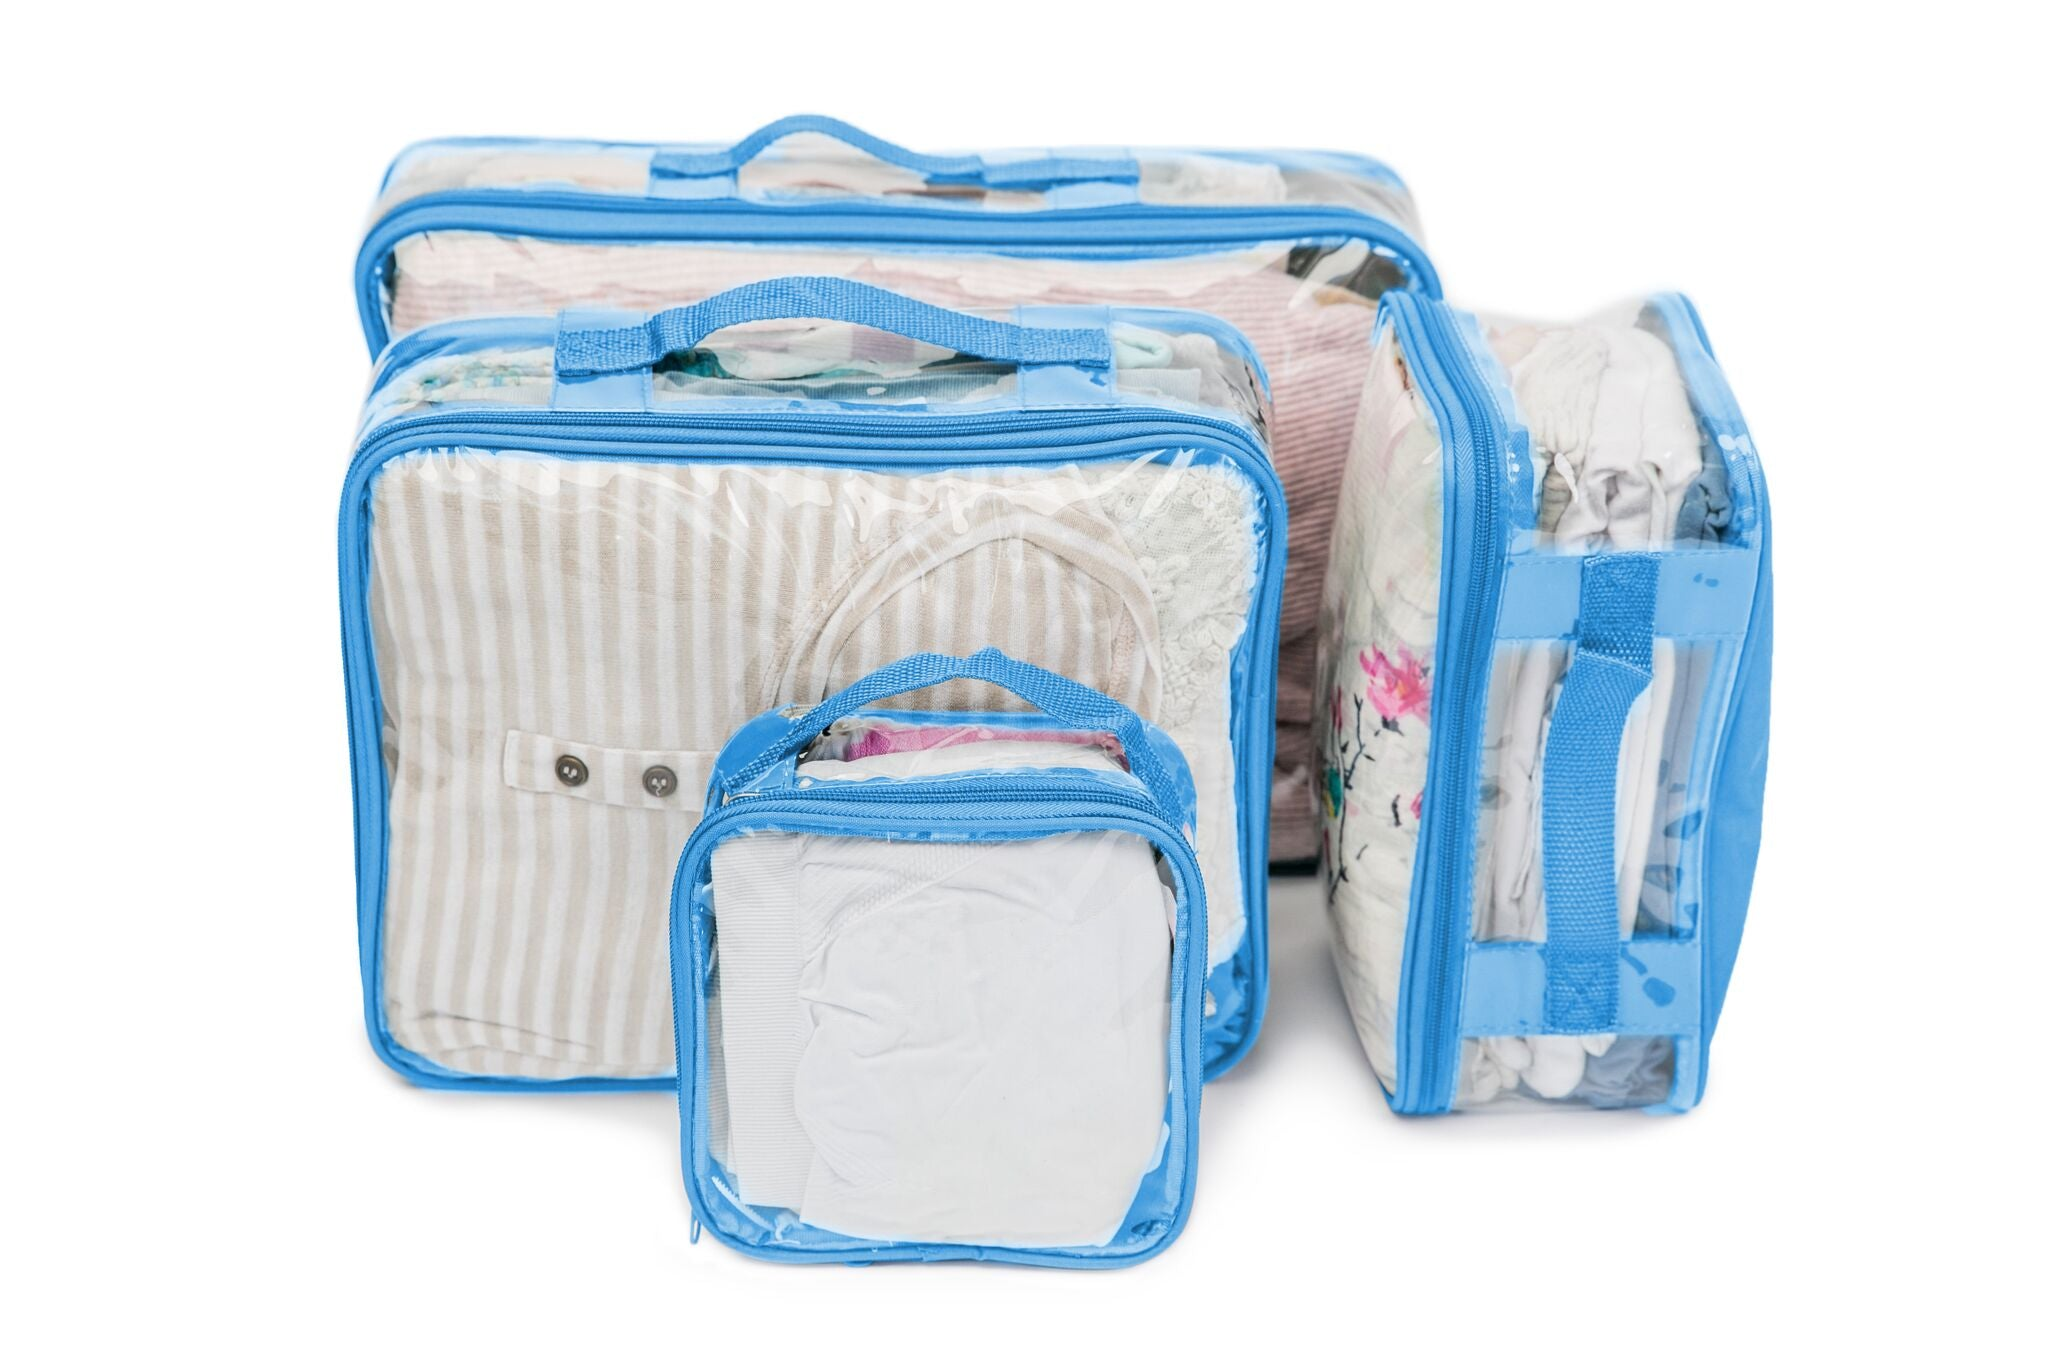 Best type of luggage organizer for suitcase